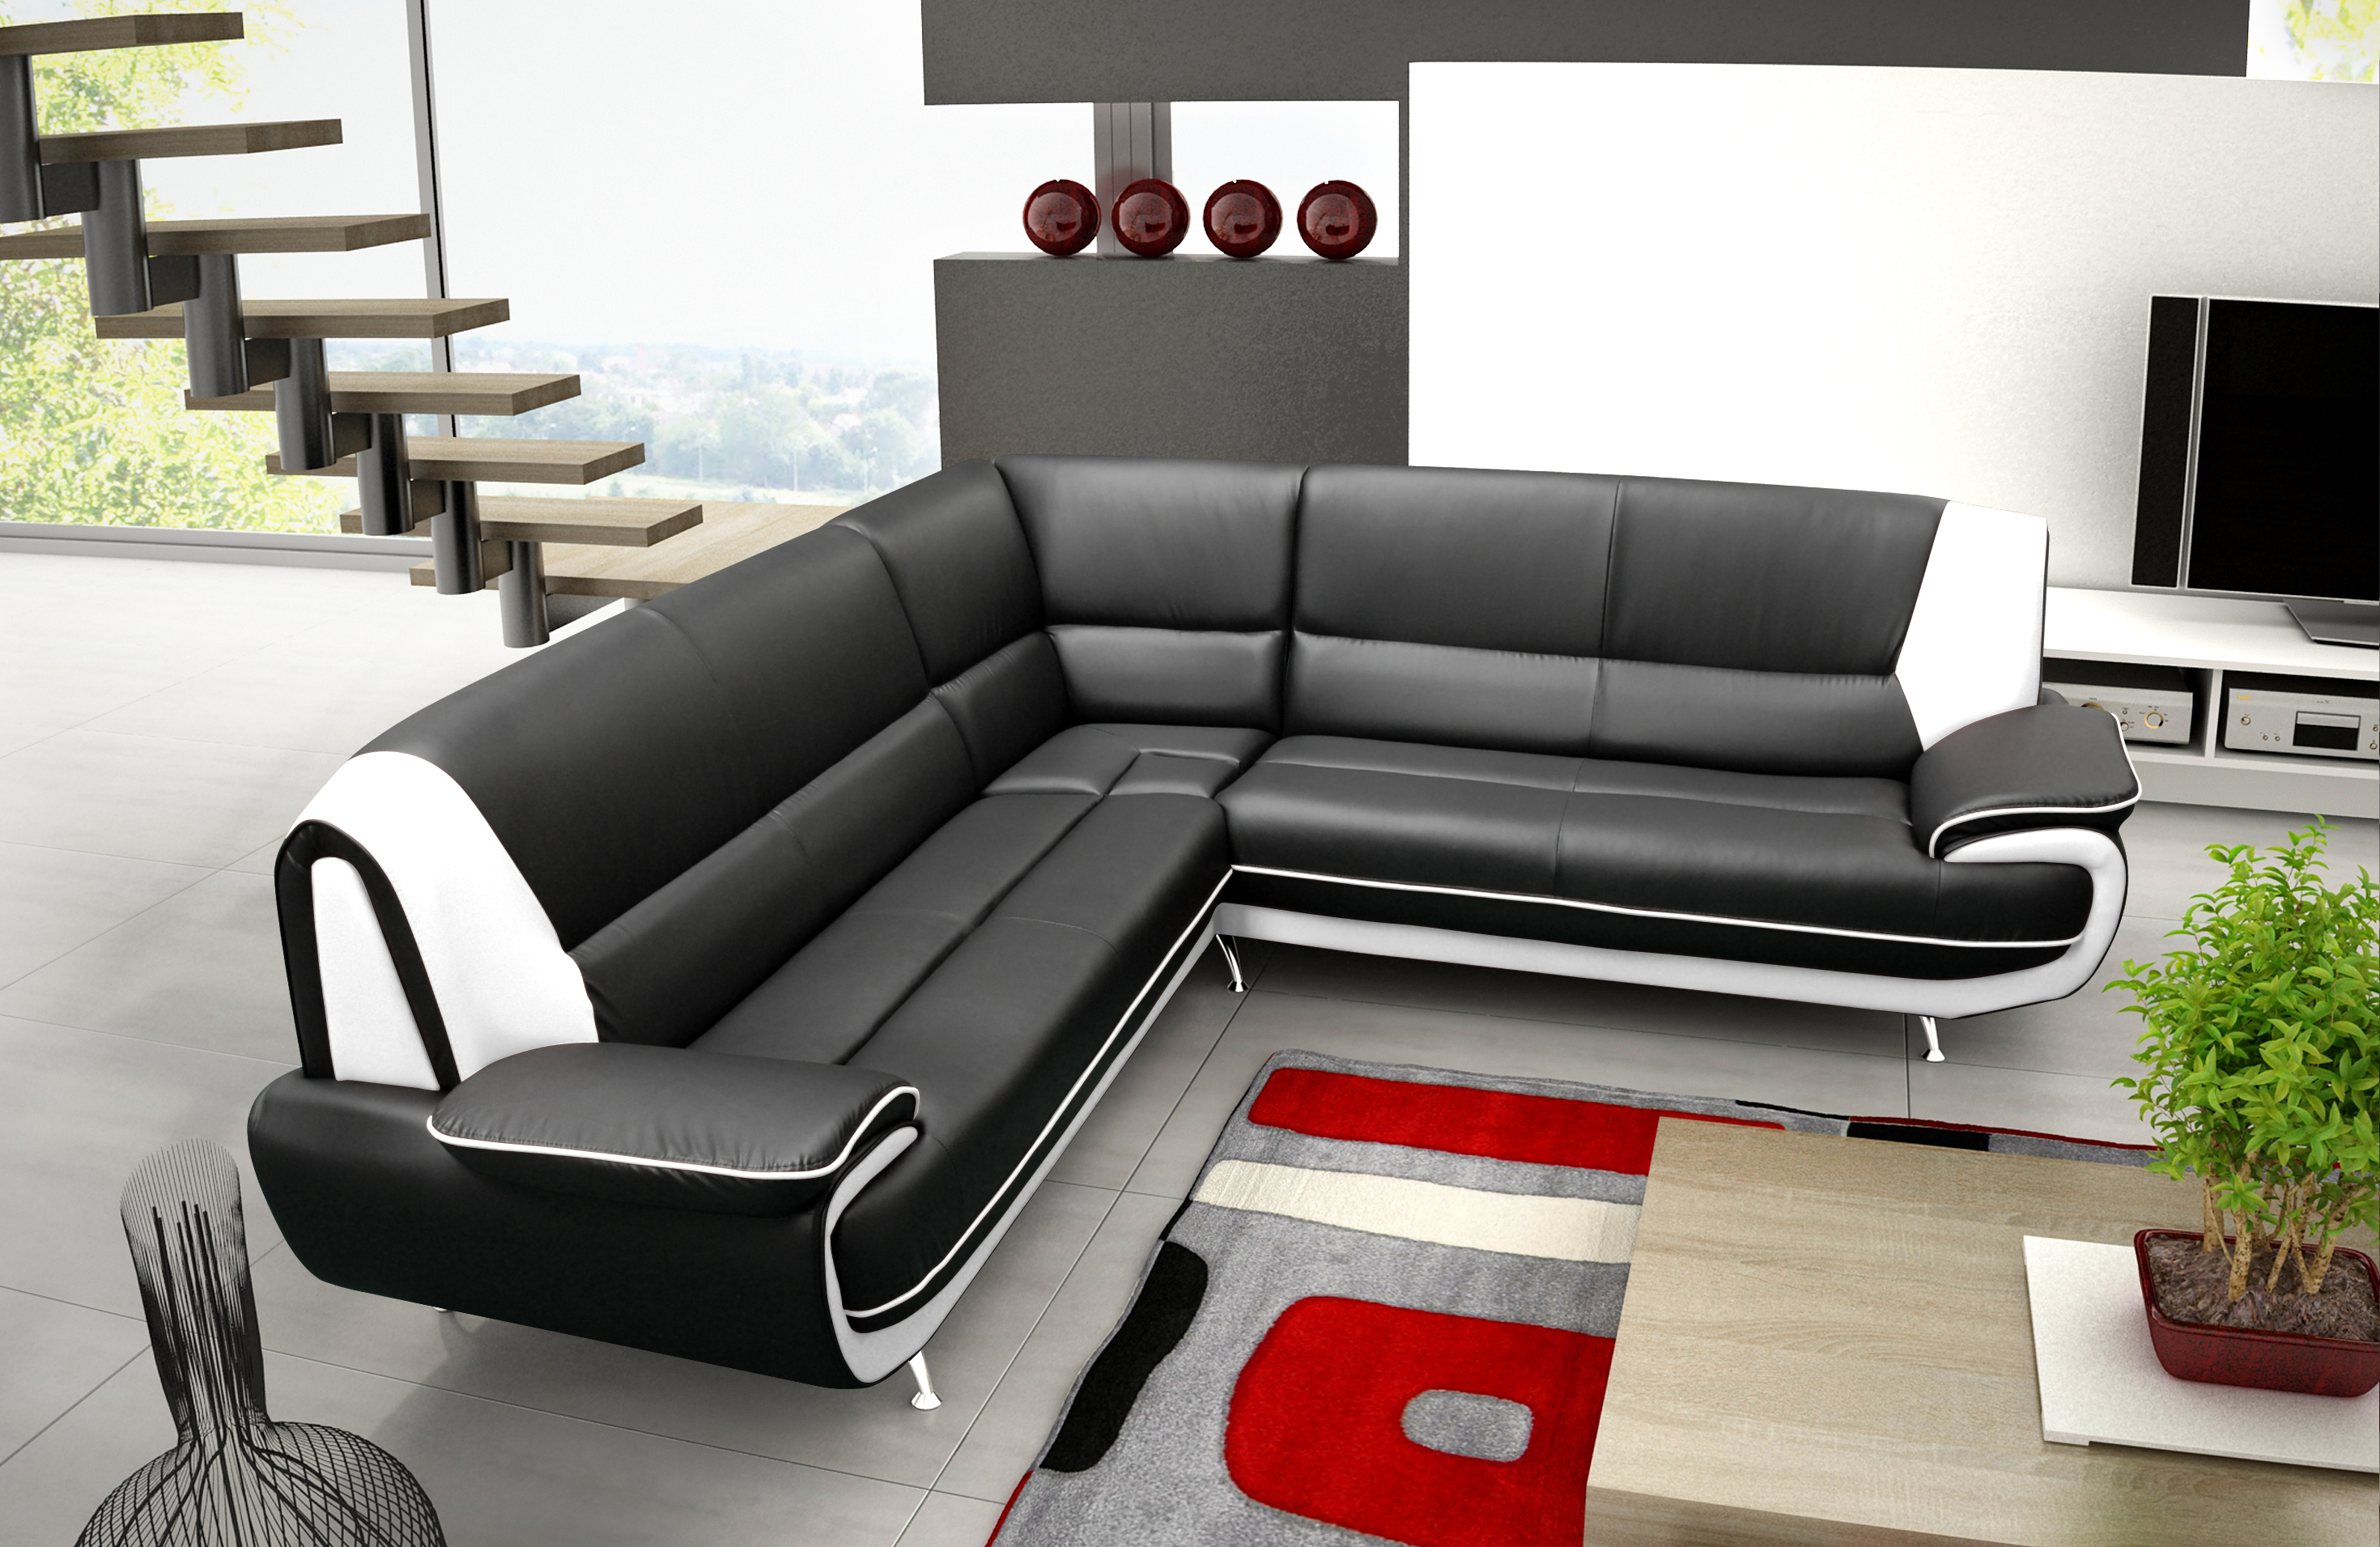 sofa couch ecksofa palermo wohnzimmer designer eckcouch schwarz wei ebay. Black Bedroom Furniture Sets. Home Design Ideas